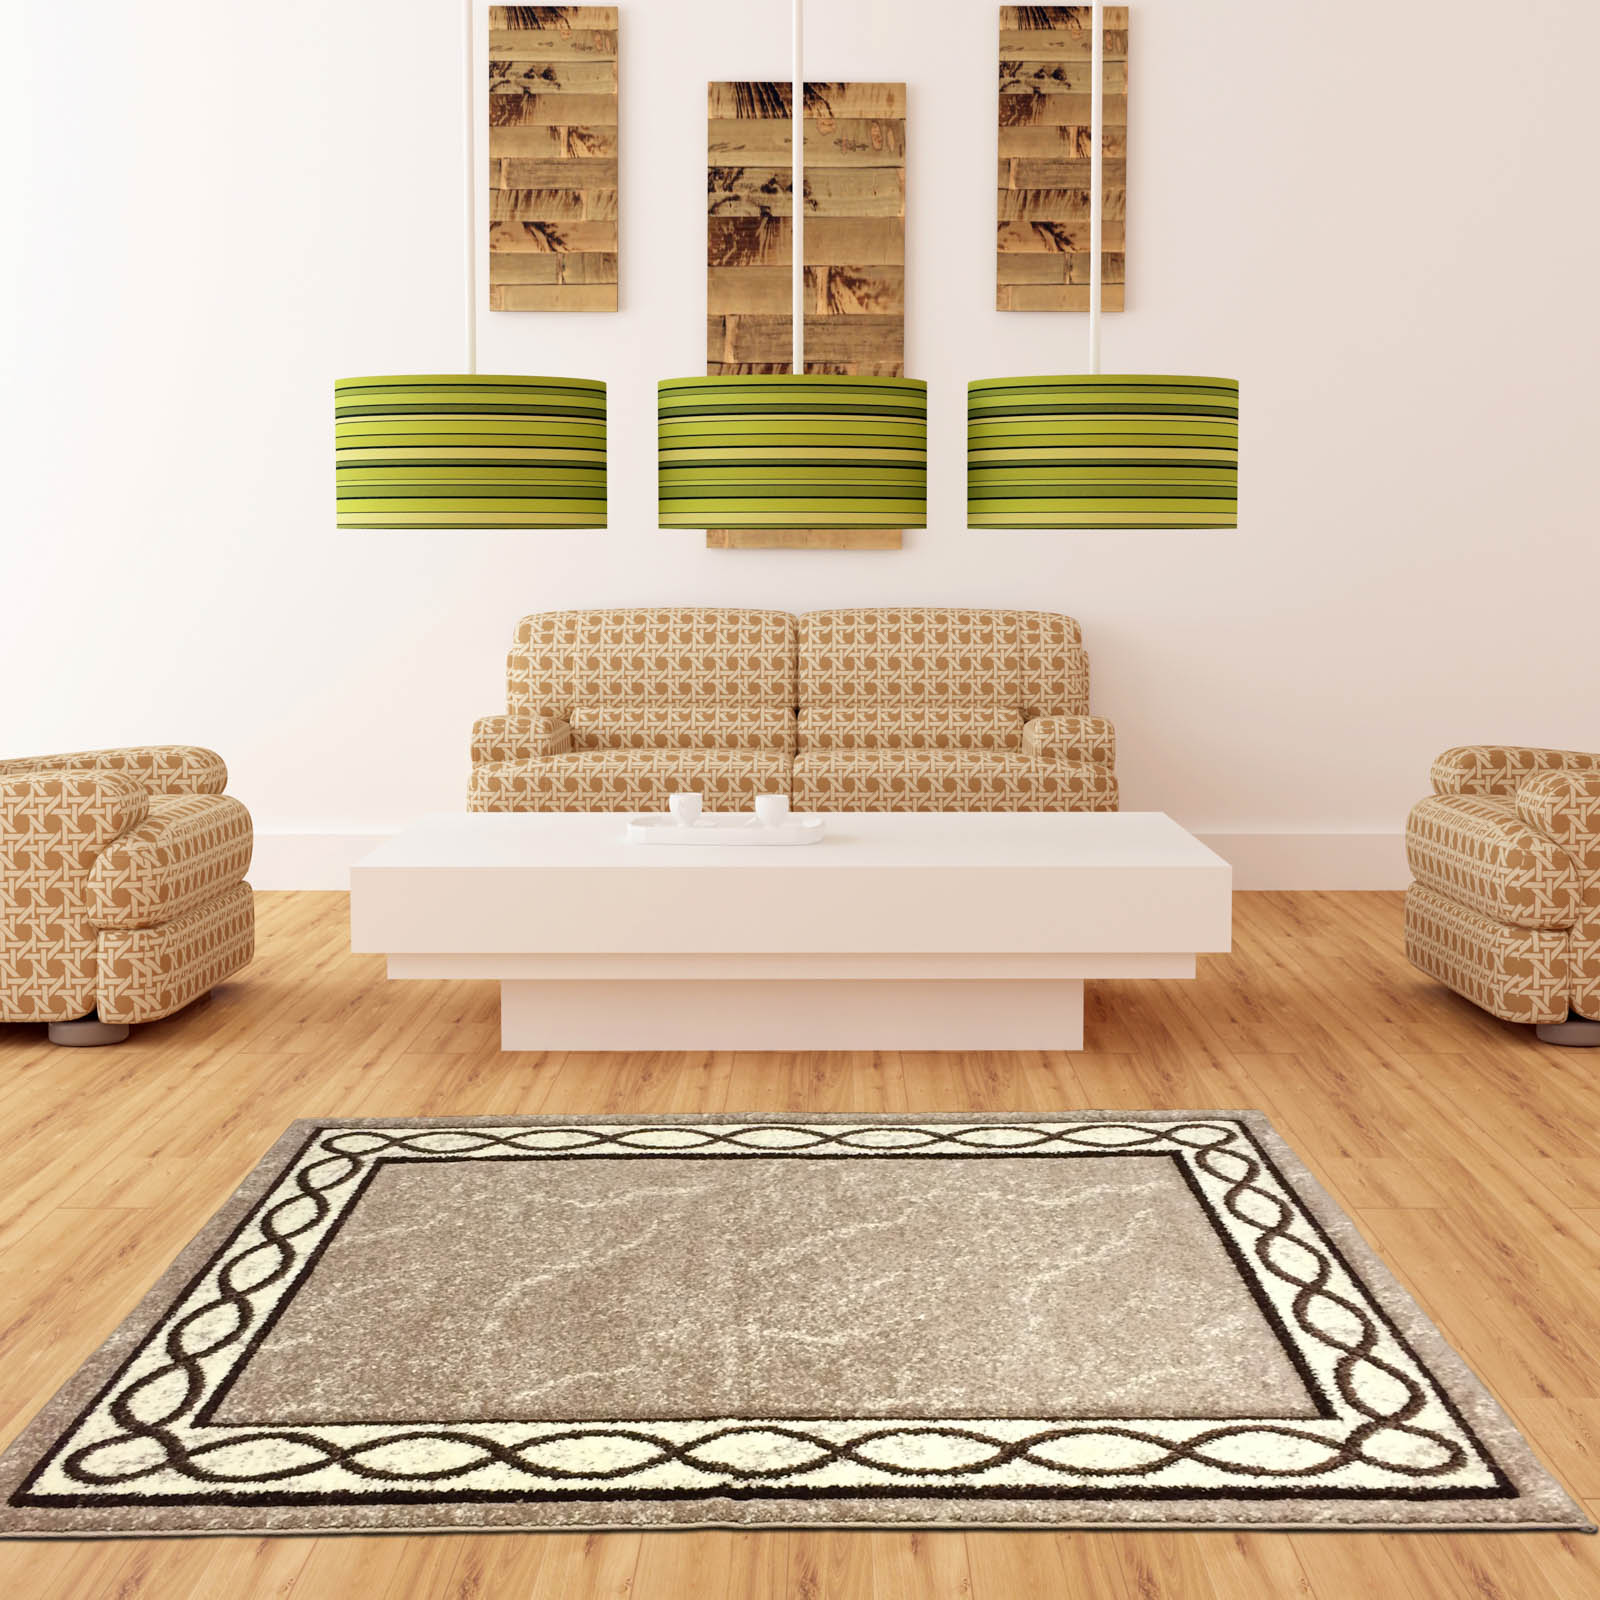 Naples Loop Border Rugs in Beige